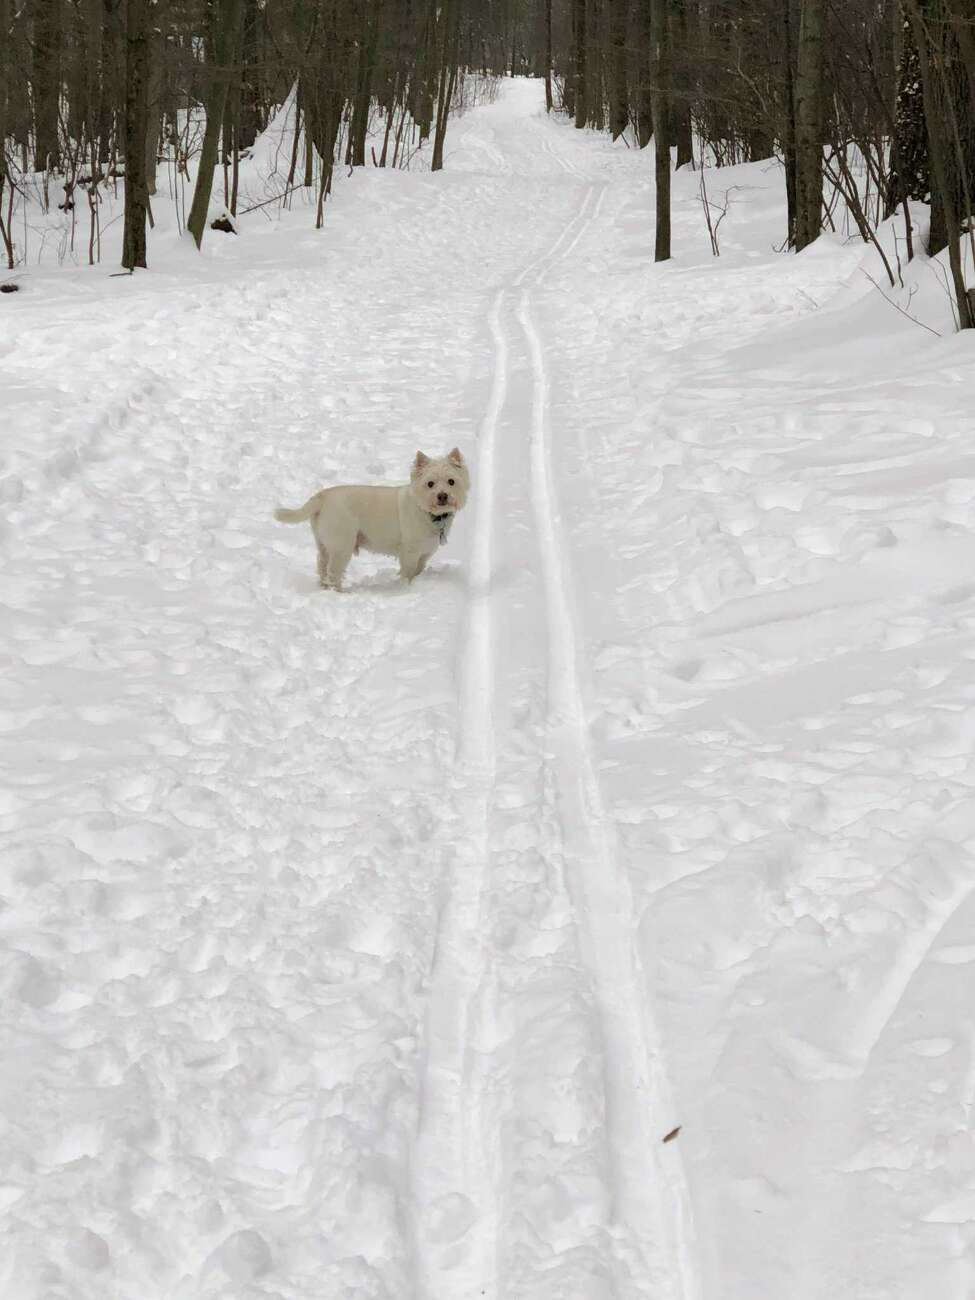 The town of Clifton Park grooms the trails of Kinns Road Park for cross country skiing. (Joyce Bassett / Times Union)